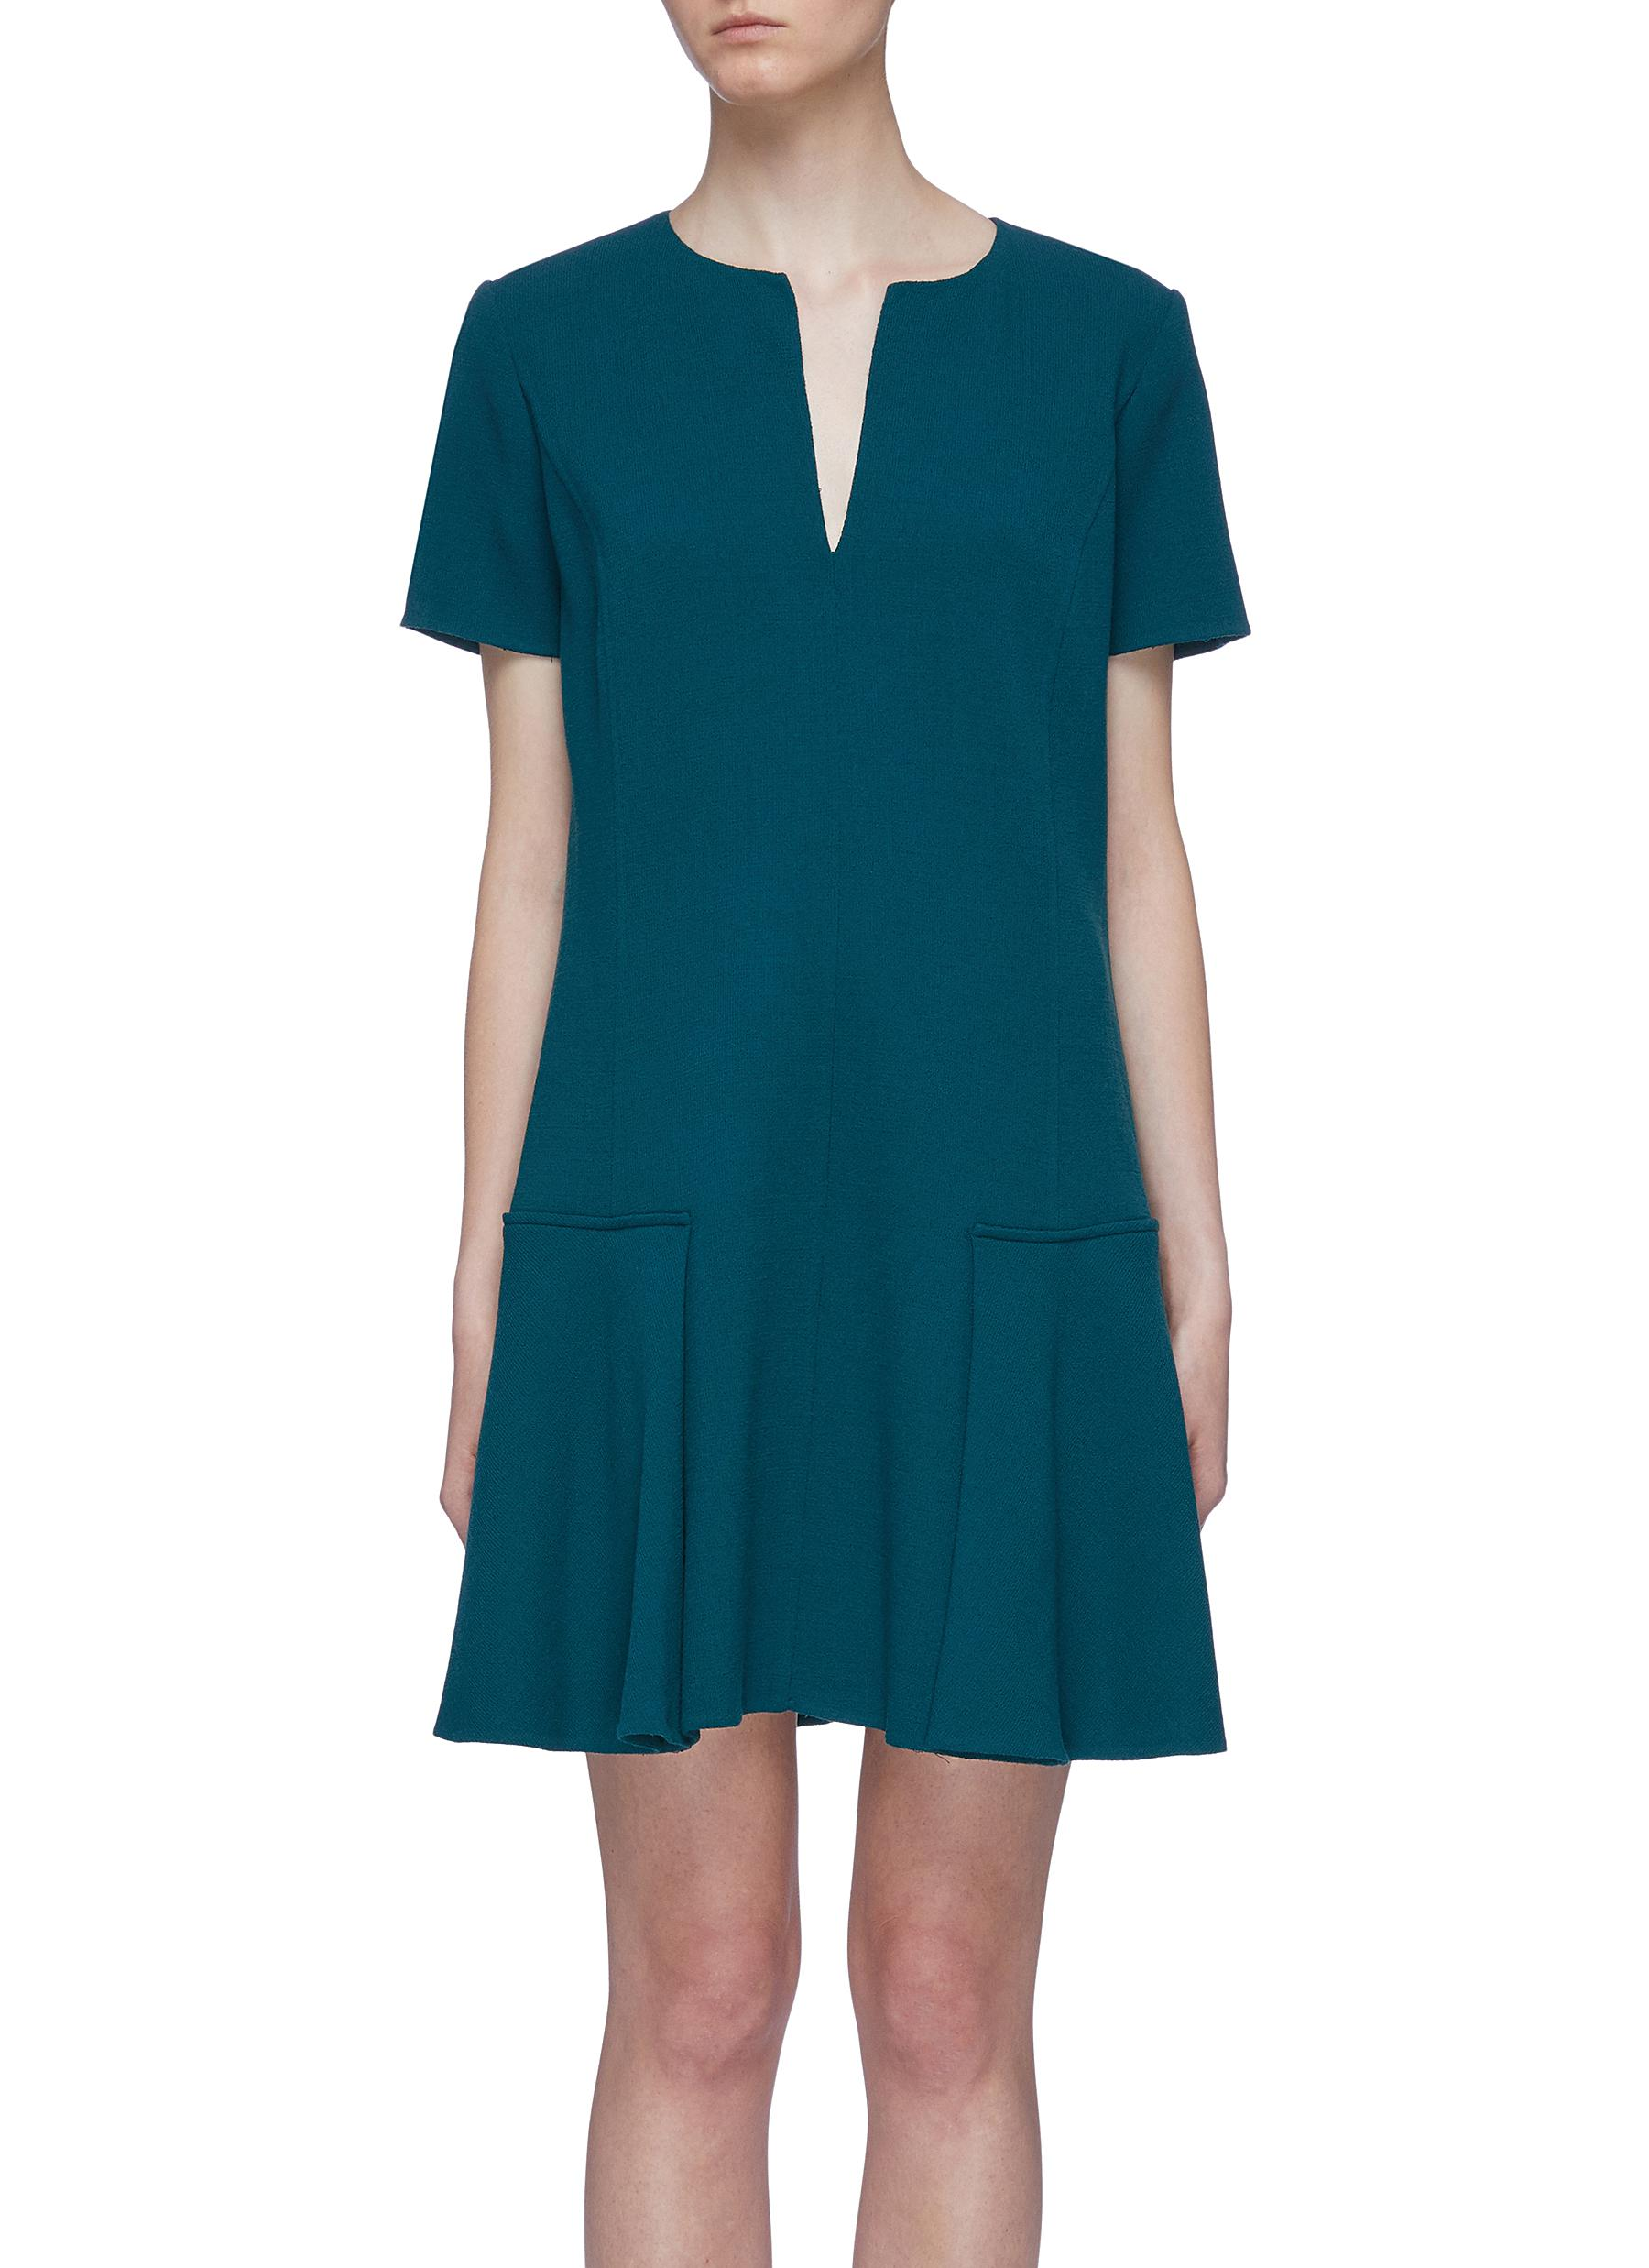 Notched collar virgin wool blend crepe peplum dress by Oscar De La Renta